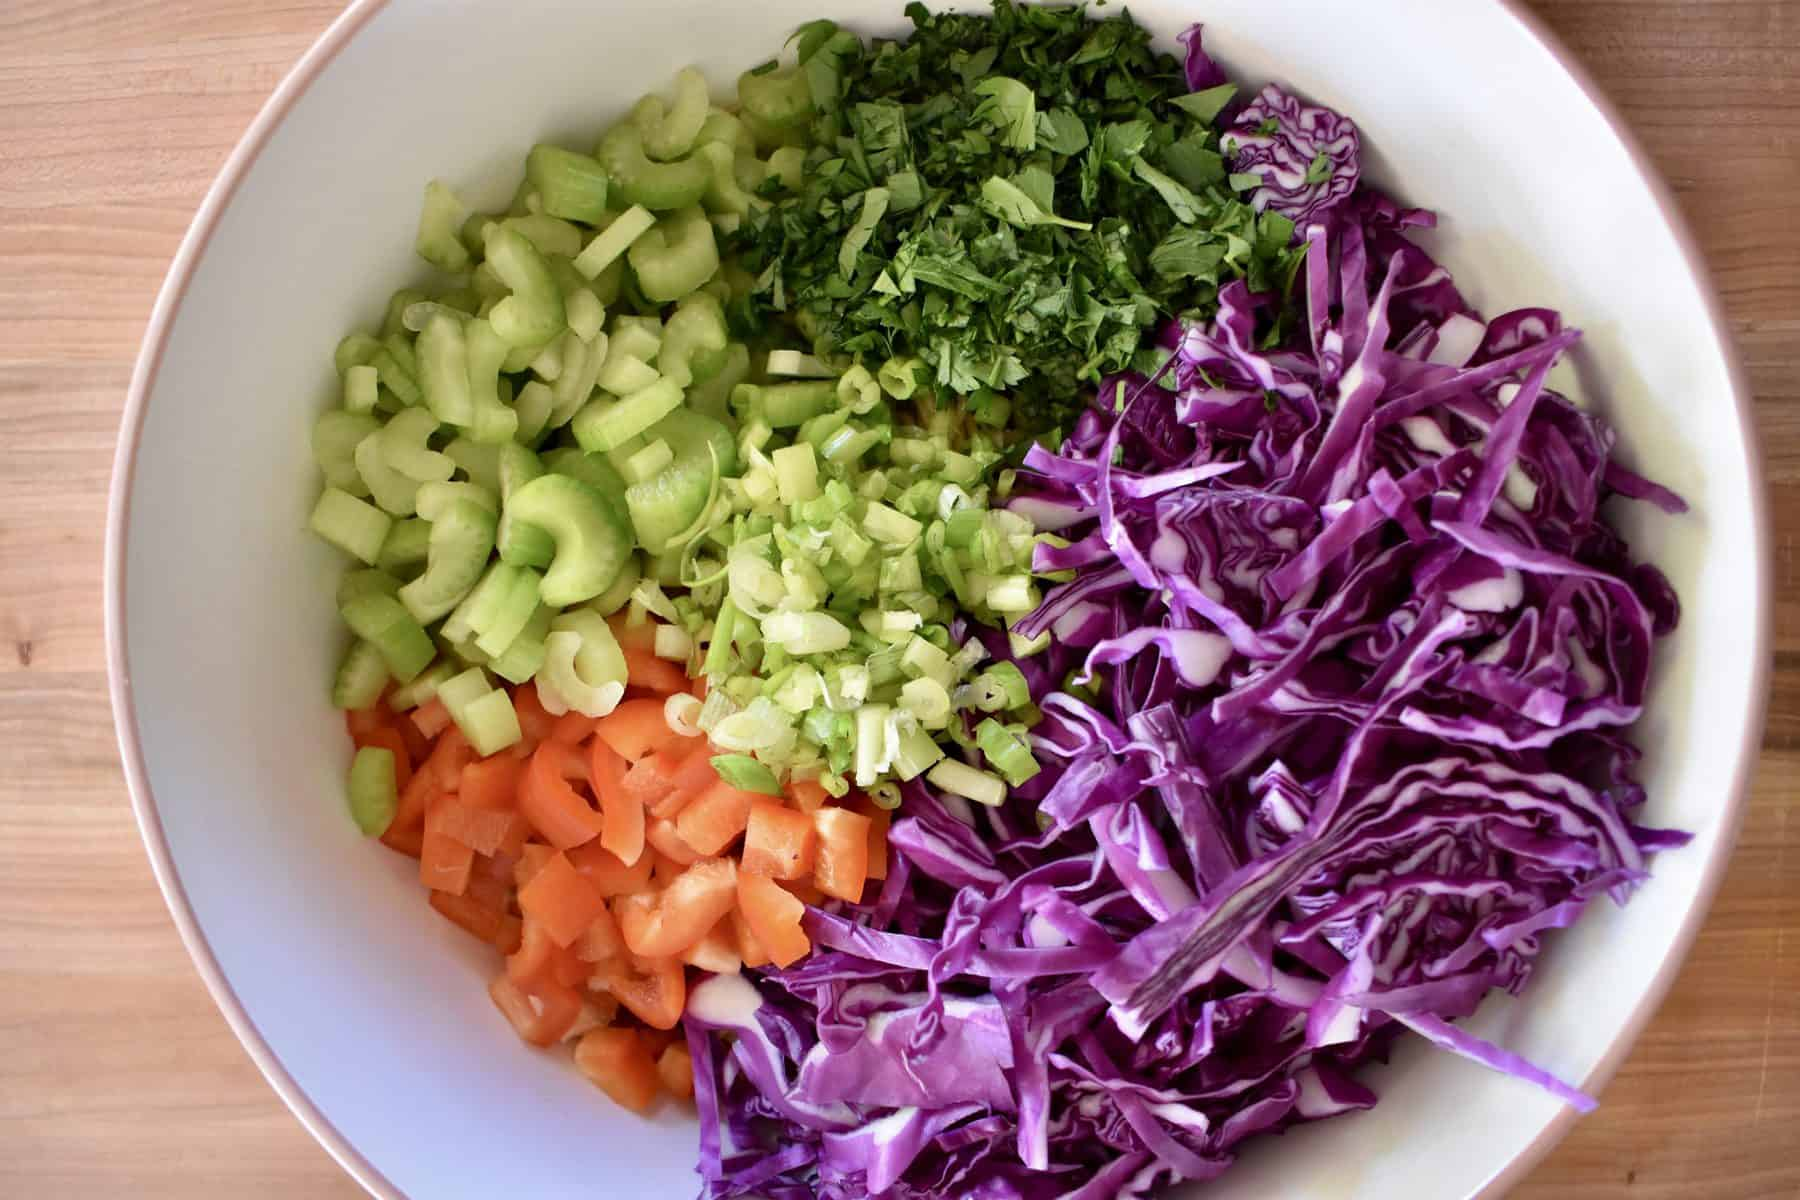 overhead photo of cabbage, celery, bell peppers, green onion, and whole wheat noodles in a large mixing bowl.